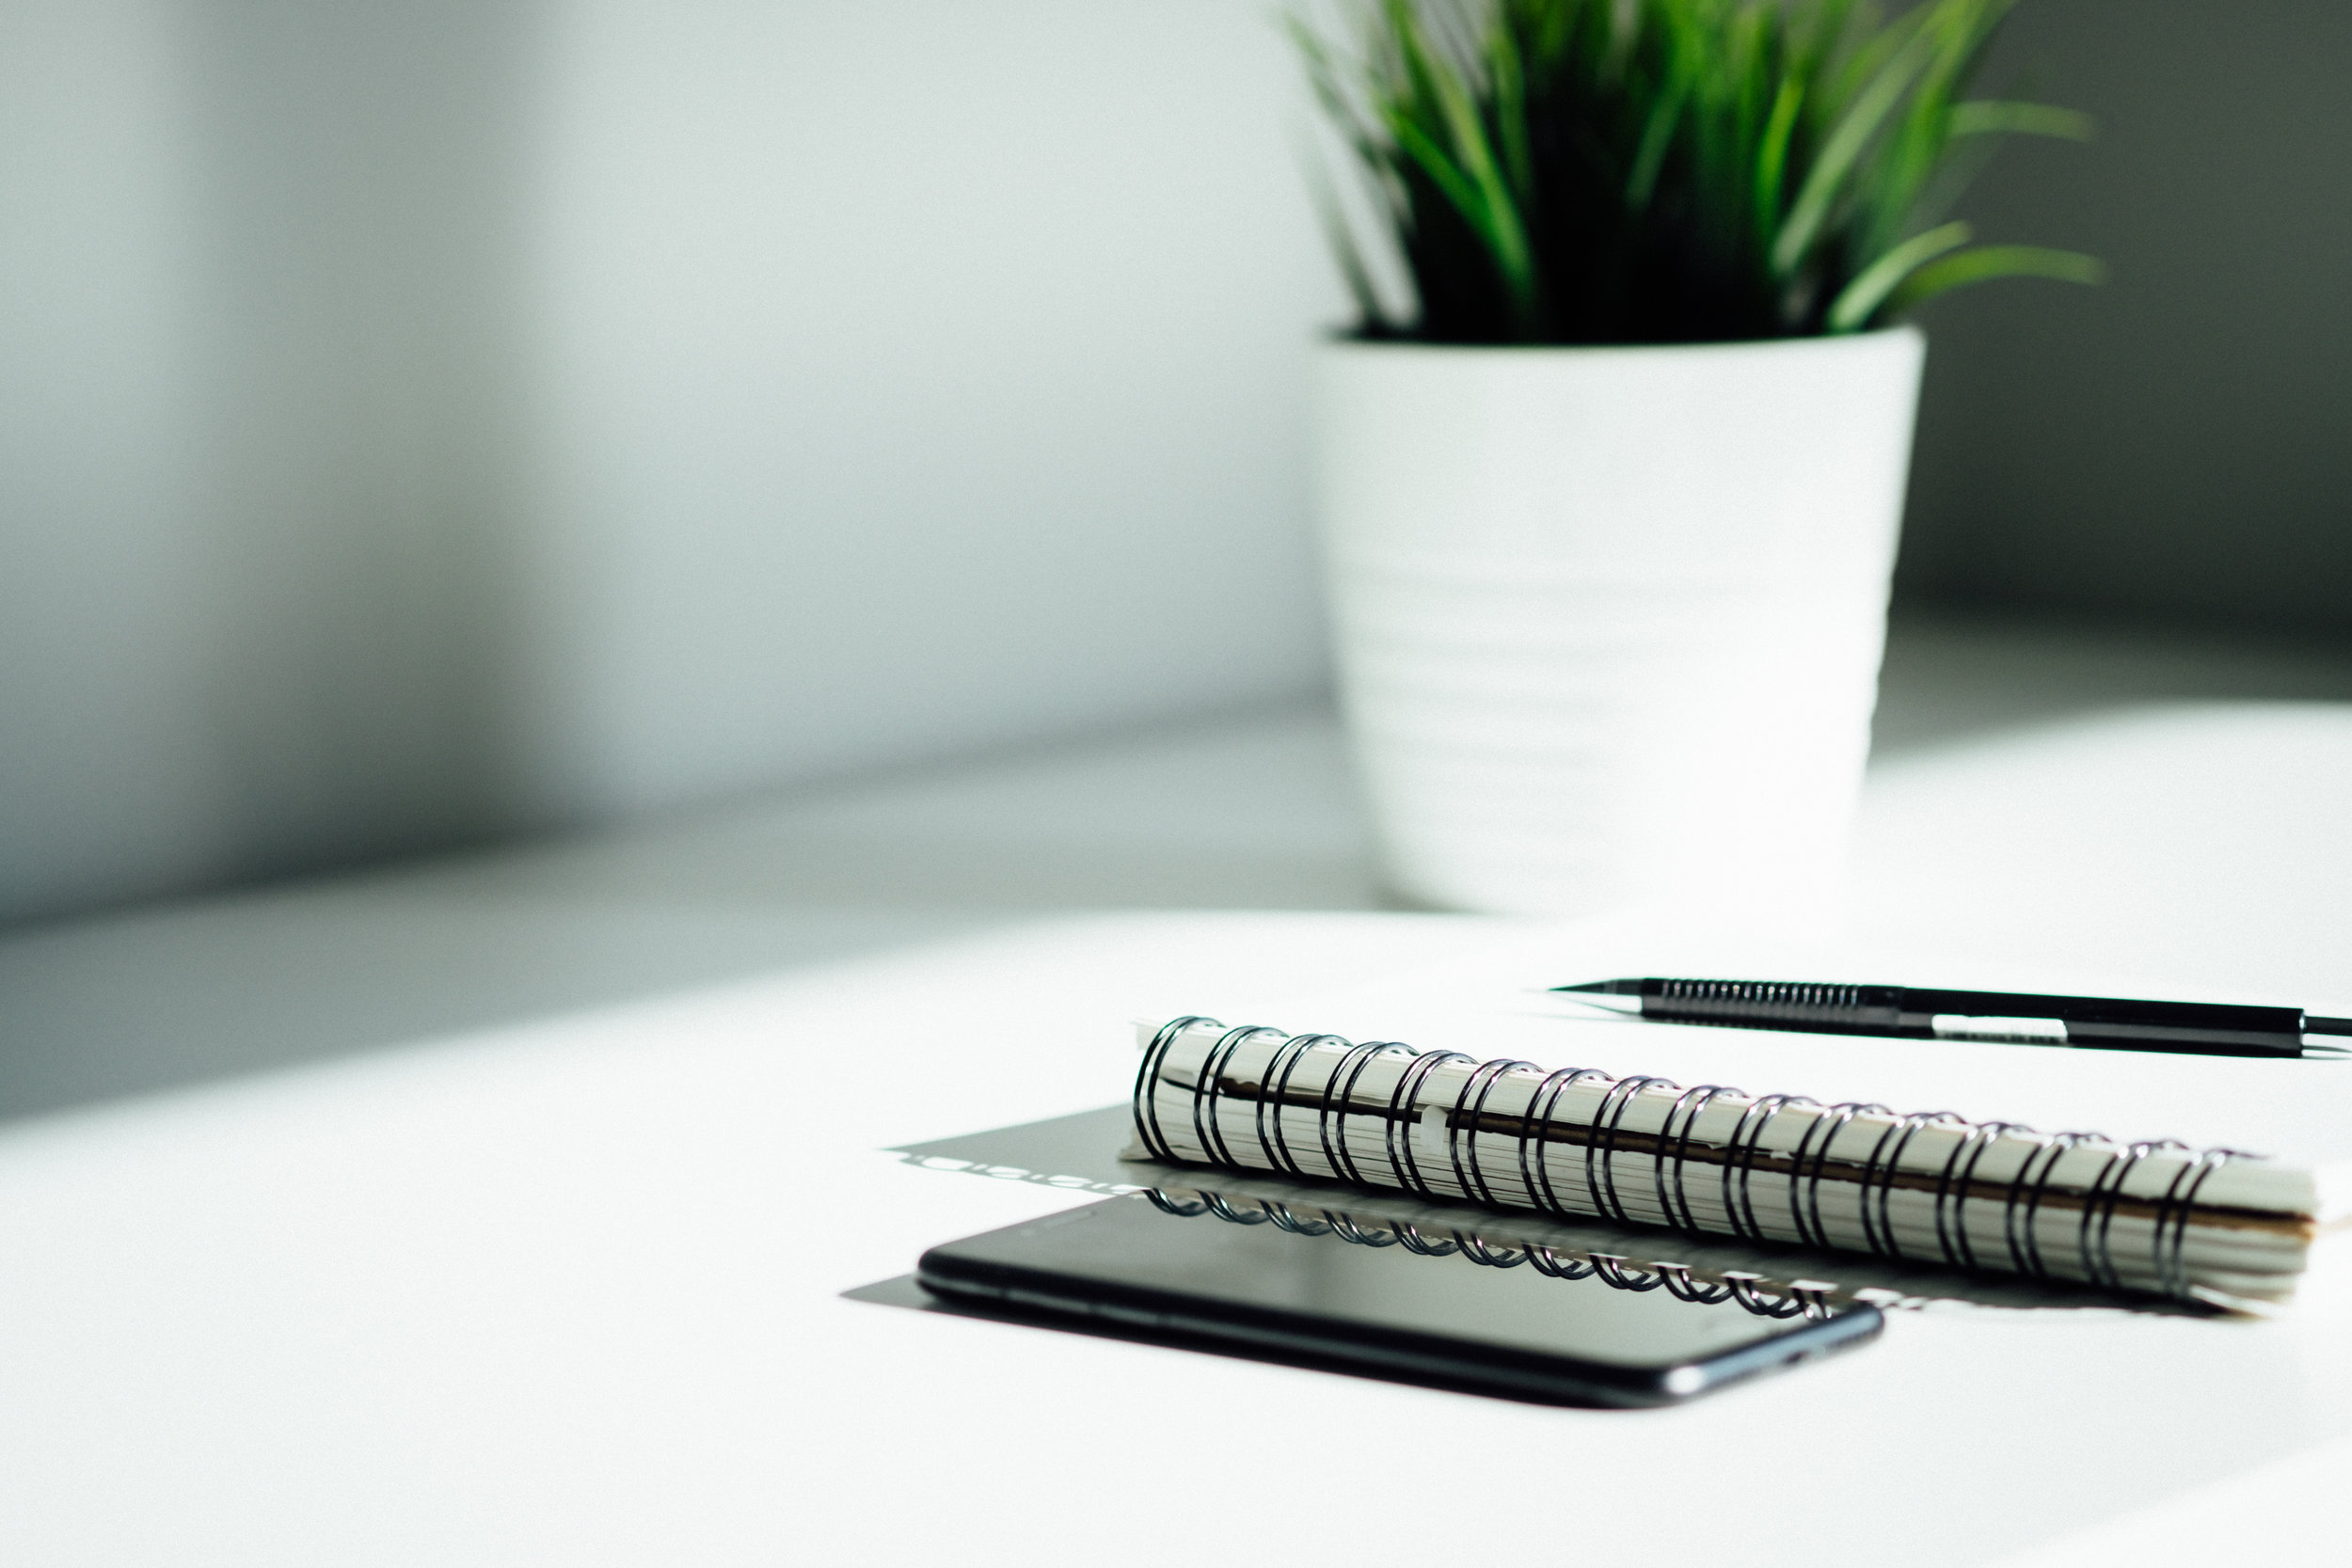 Picture of notebook, phone, pen, and plant.